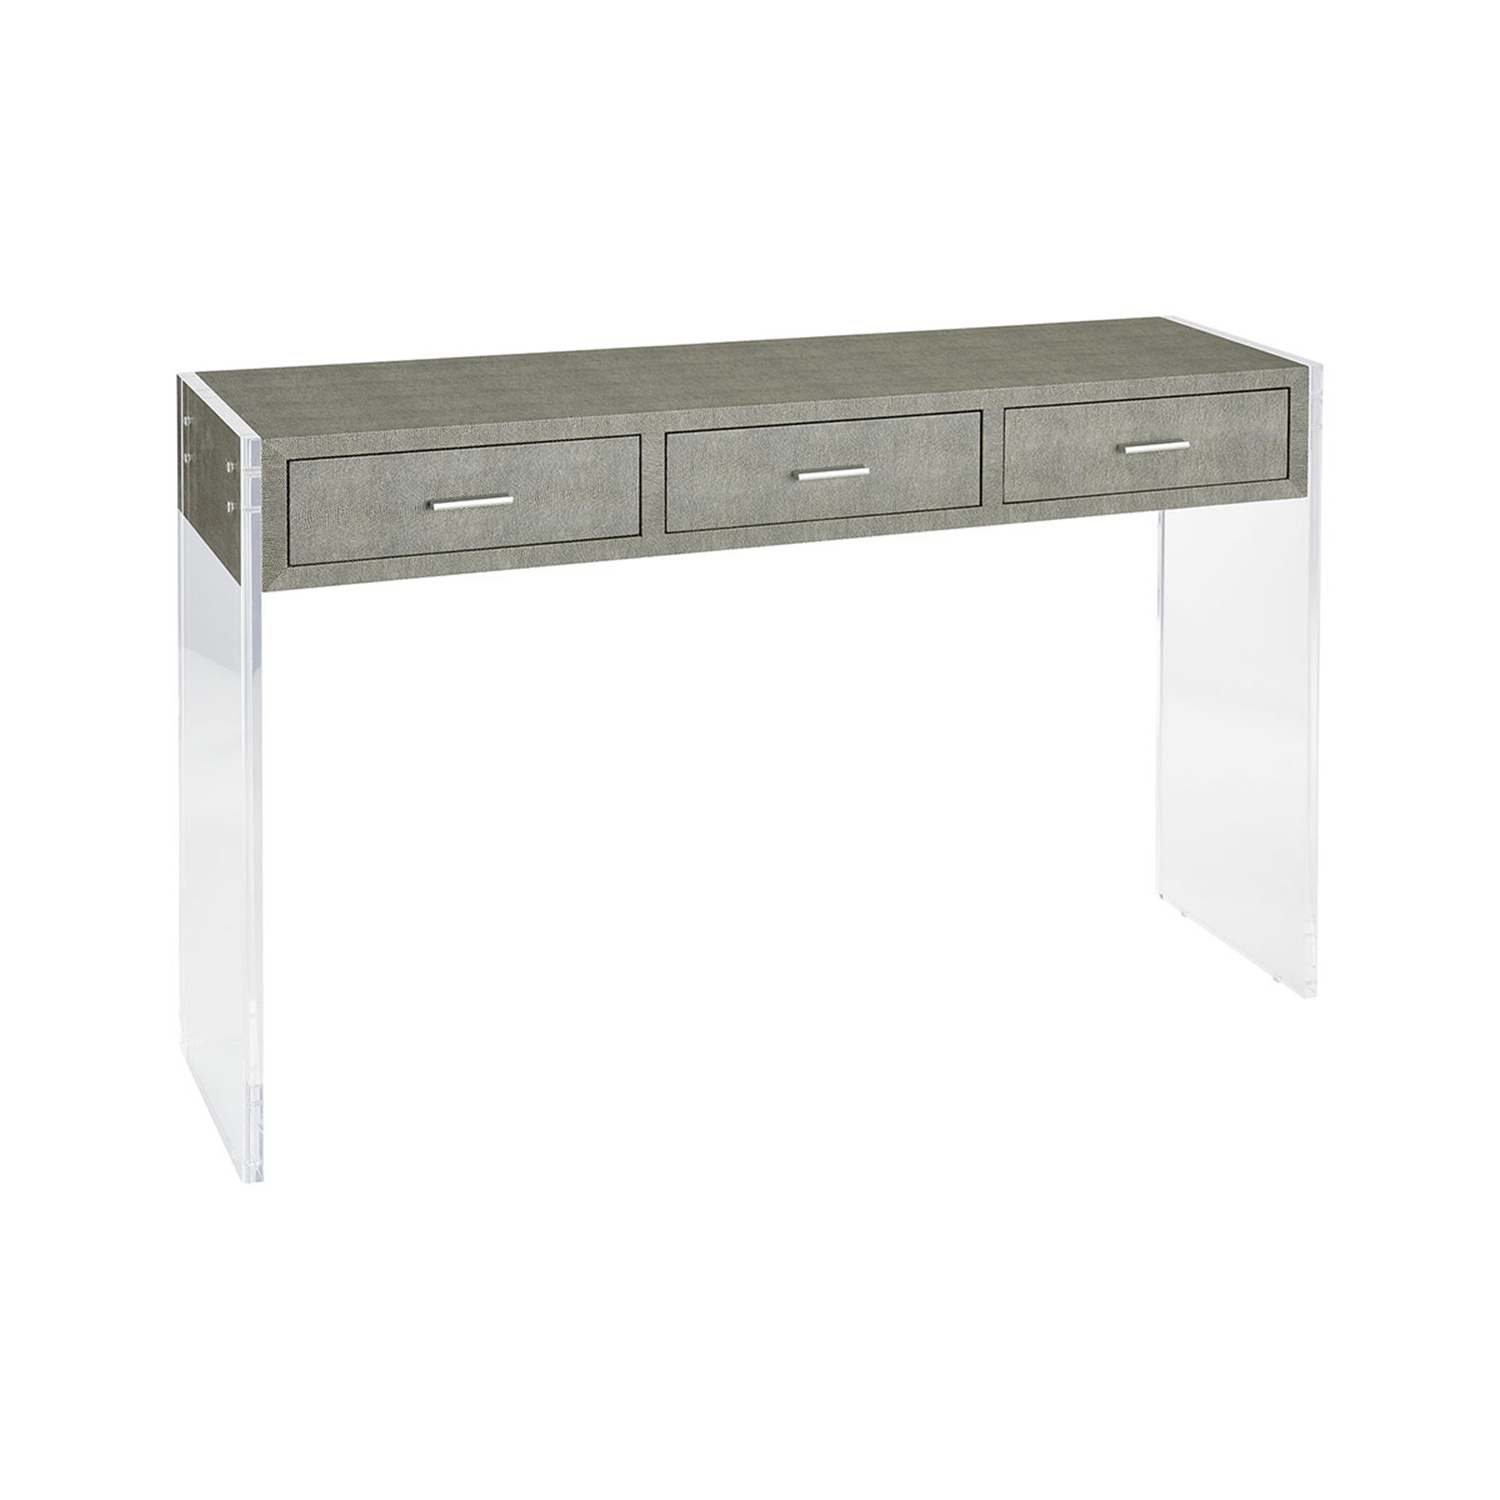 Sterling Industries Monaco Grey Faux Shagreen And Clear Acrylic 48 Throughout Grey Shagreen Media Console Tables (View 11 of 20)